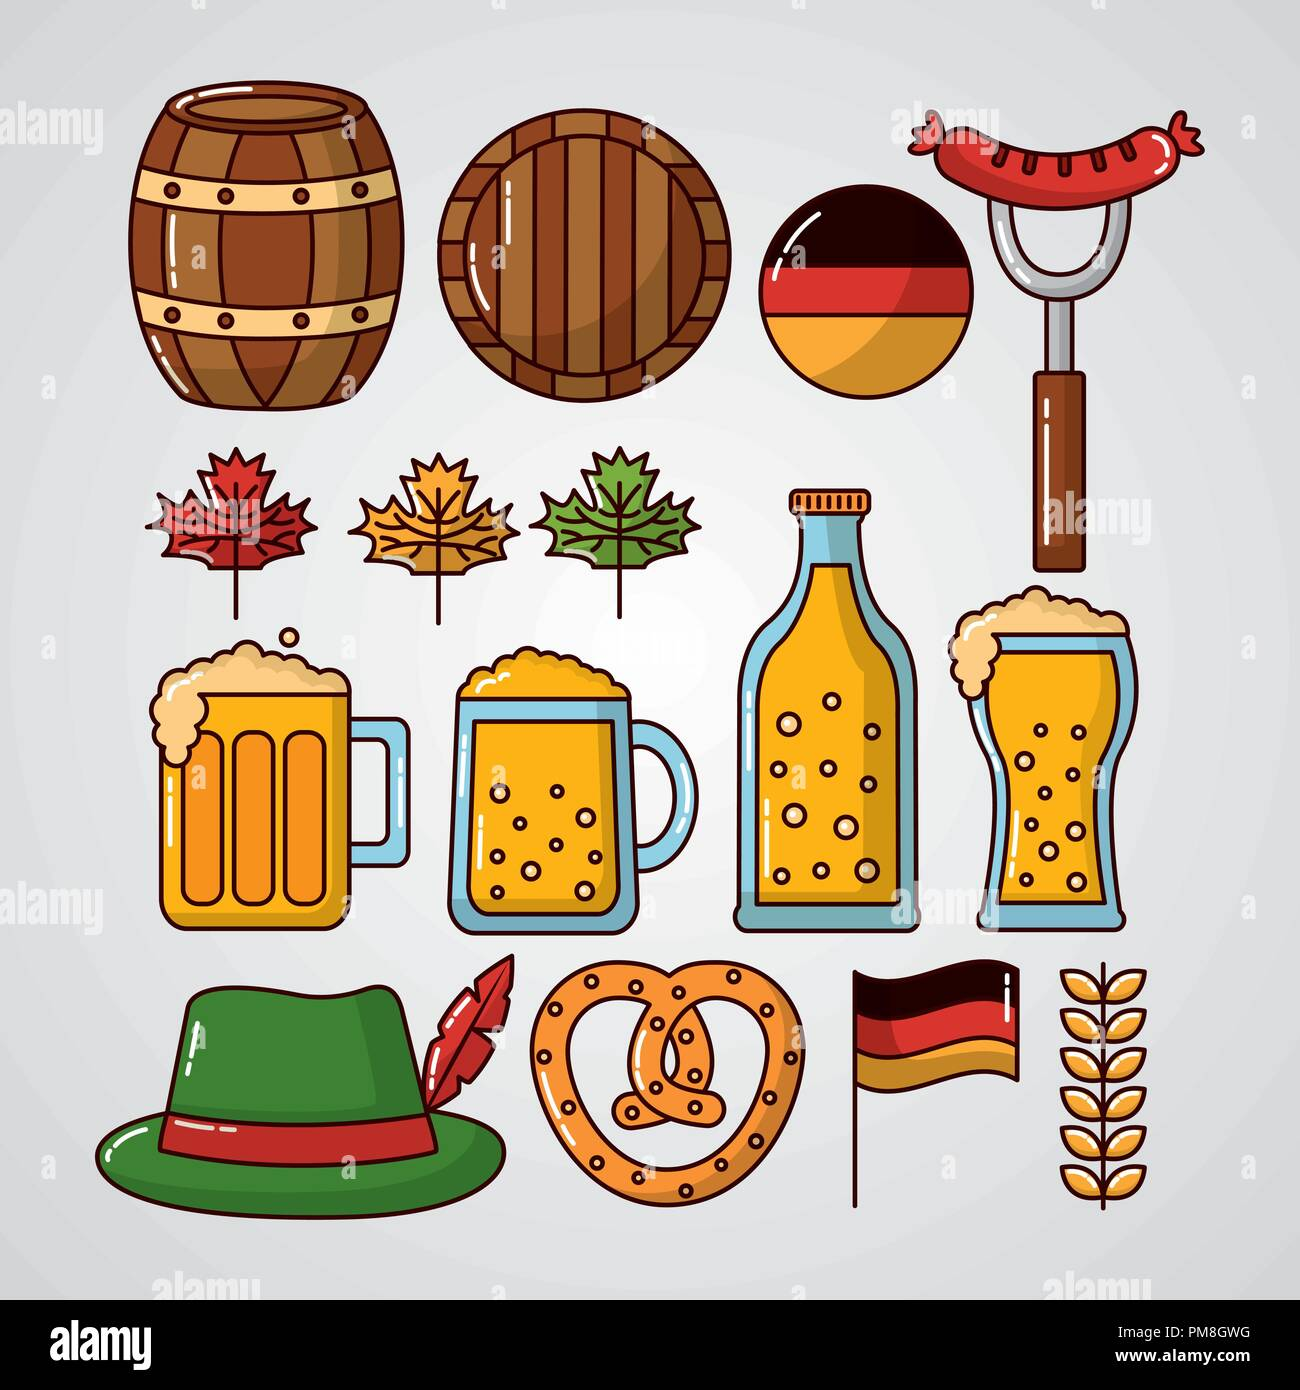 oktoberfest germany celebration - Stock Image